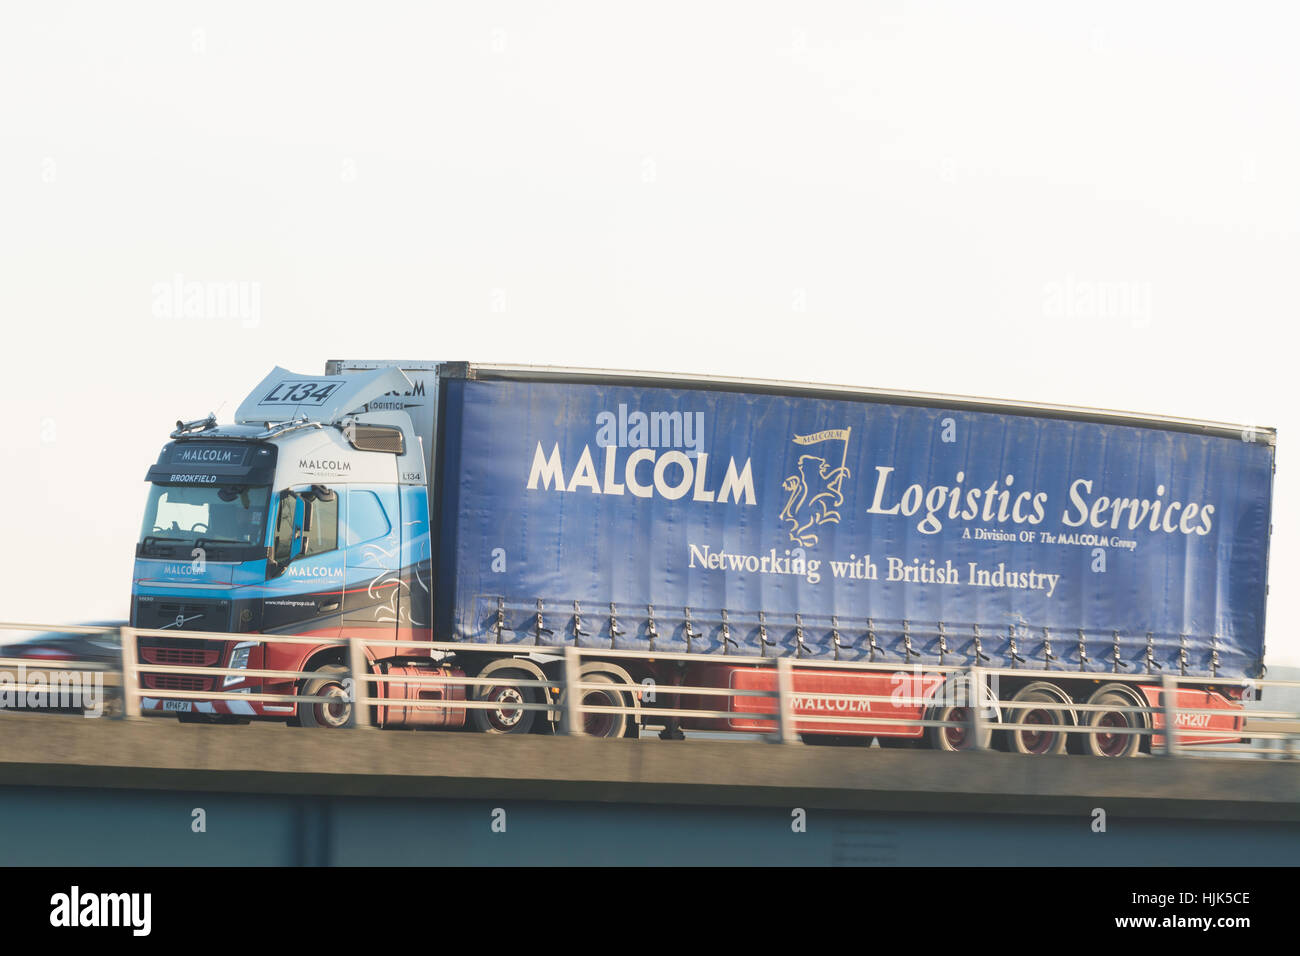 Malcolm Logistics Services lorry - Scotland, UK - Stock Image